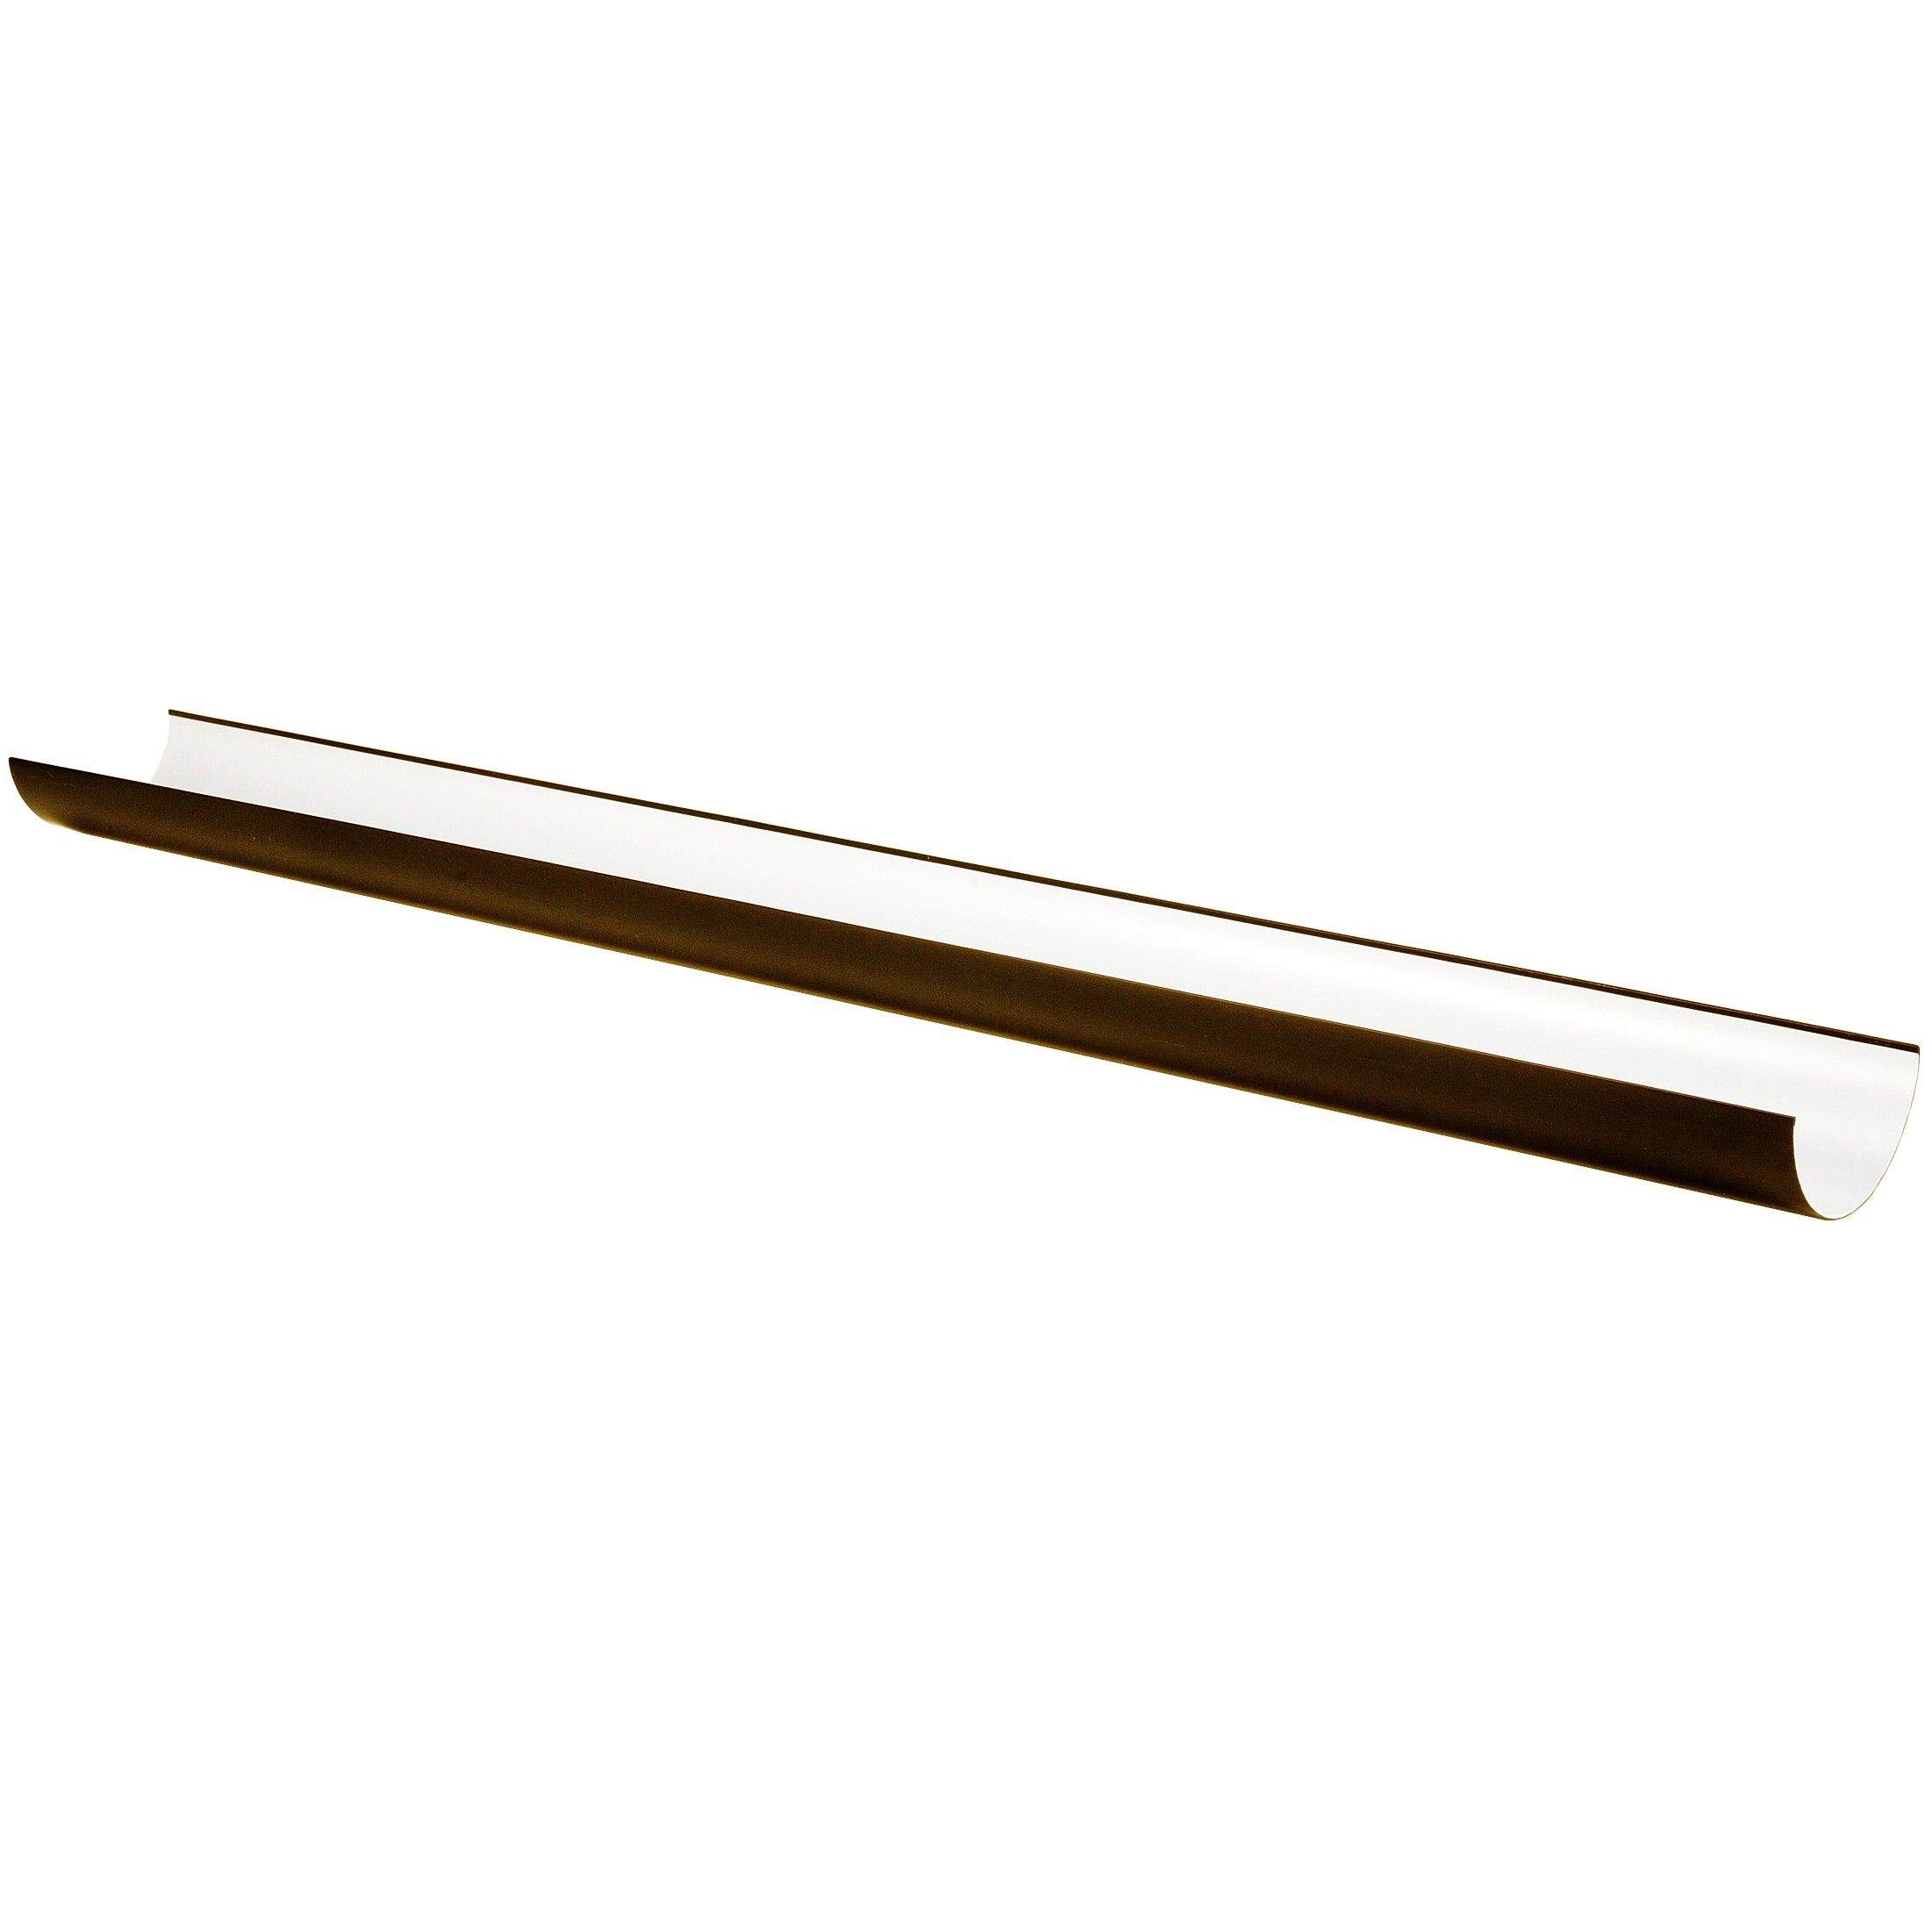 Freeflow 112mm Half Round Gutter - Brown, 4 metre